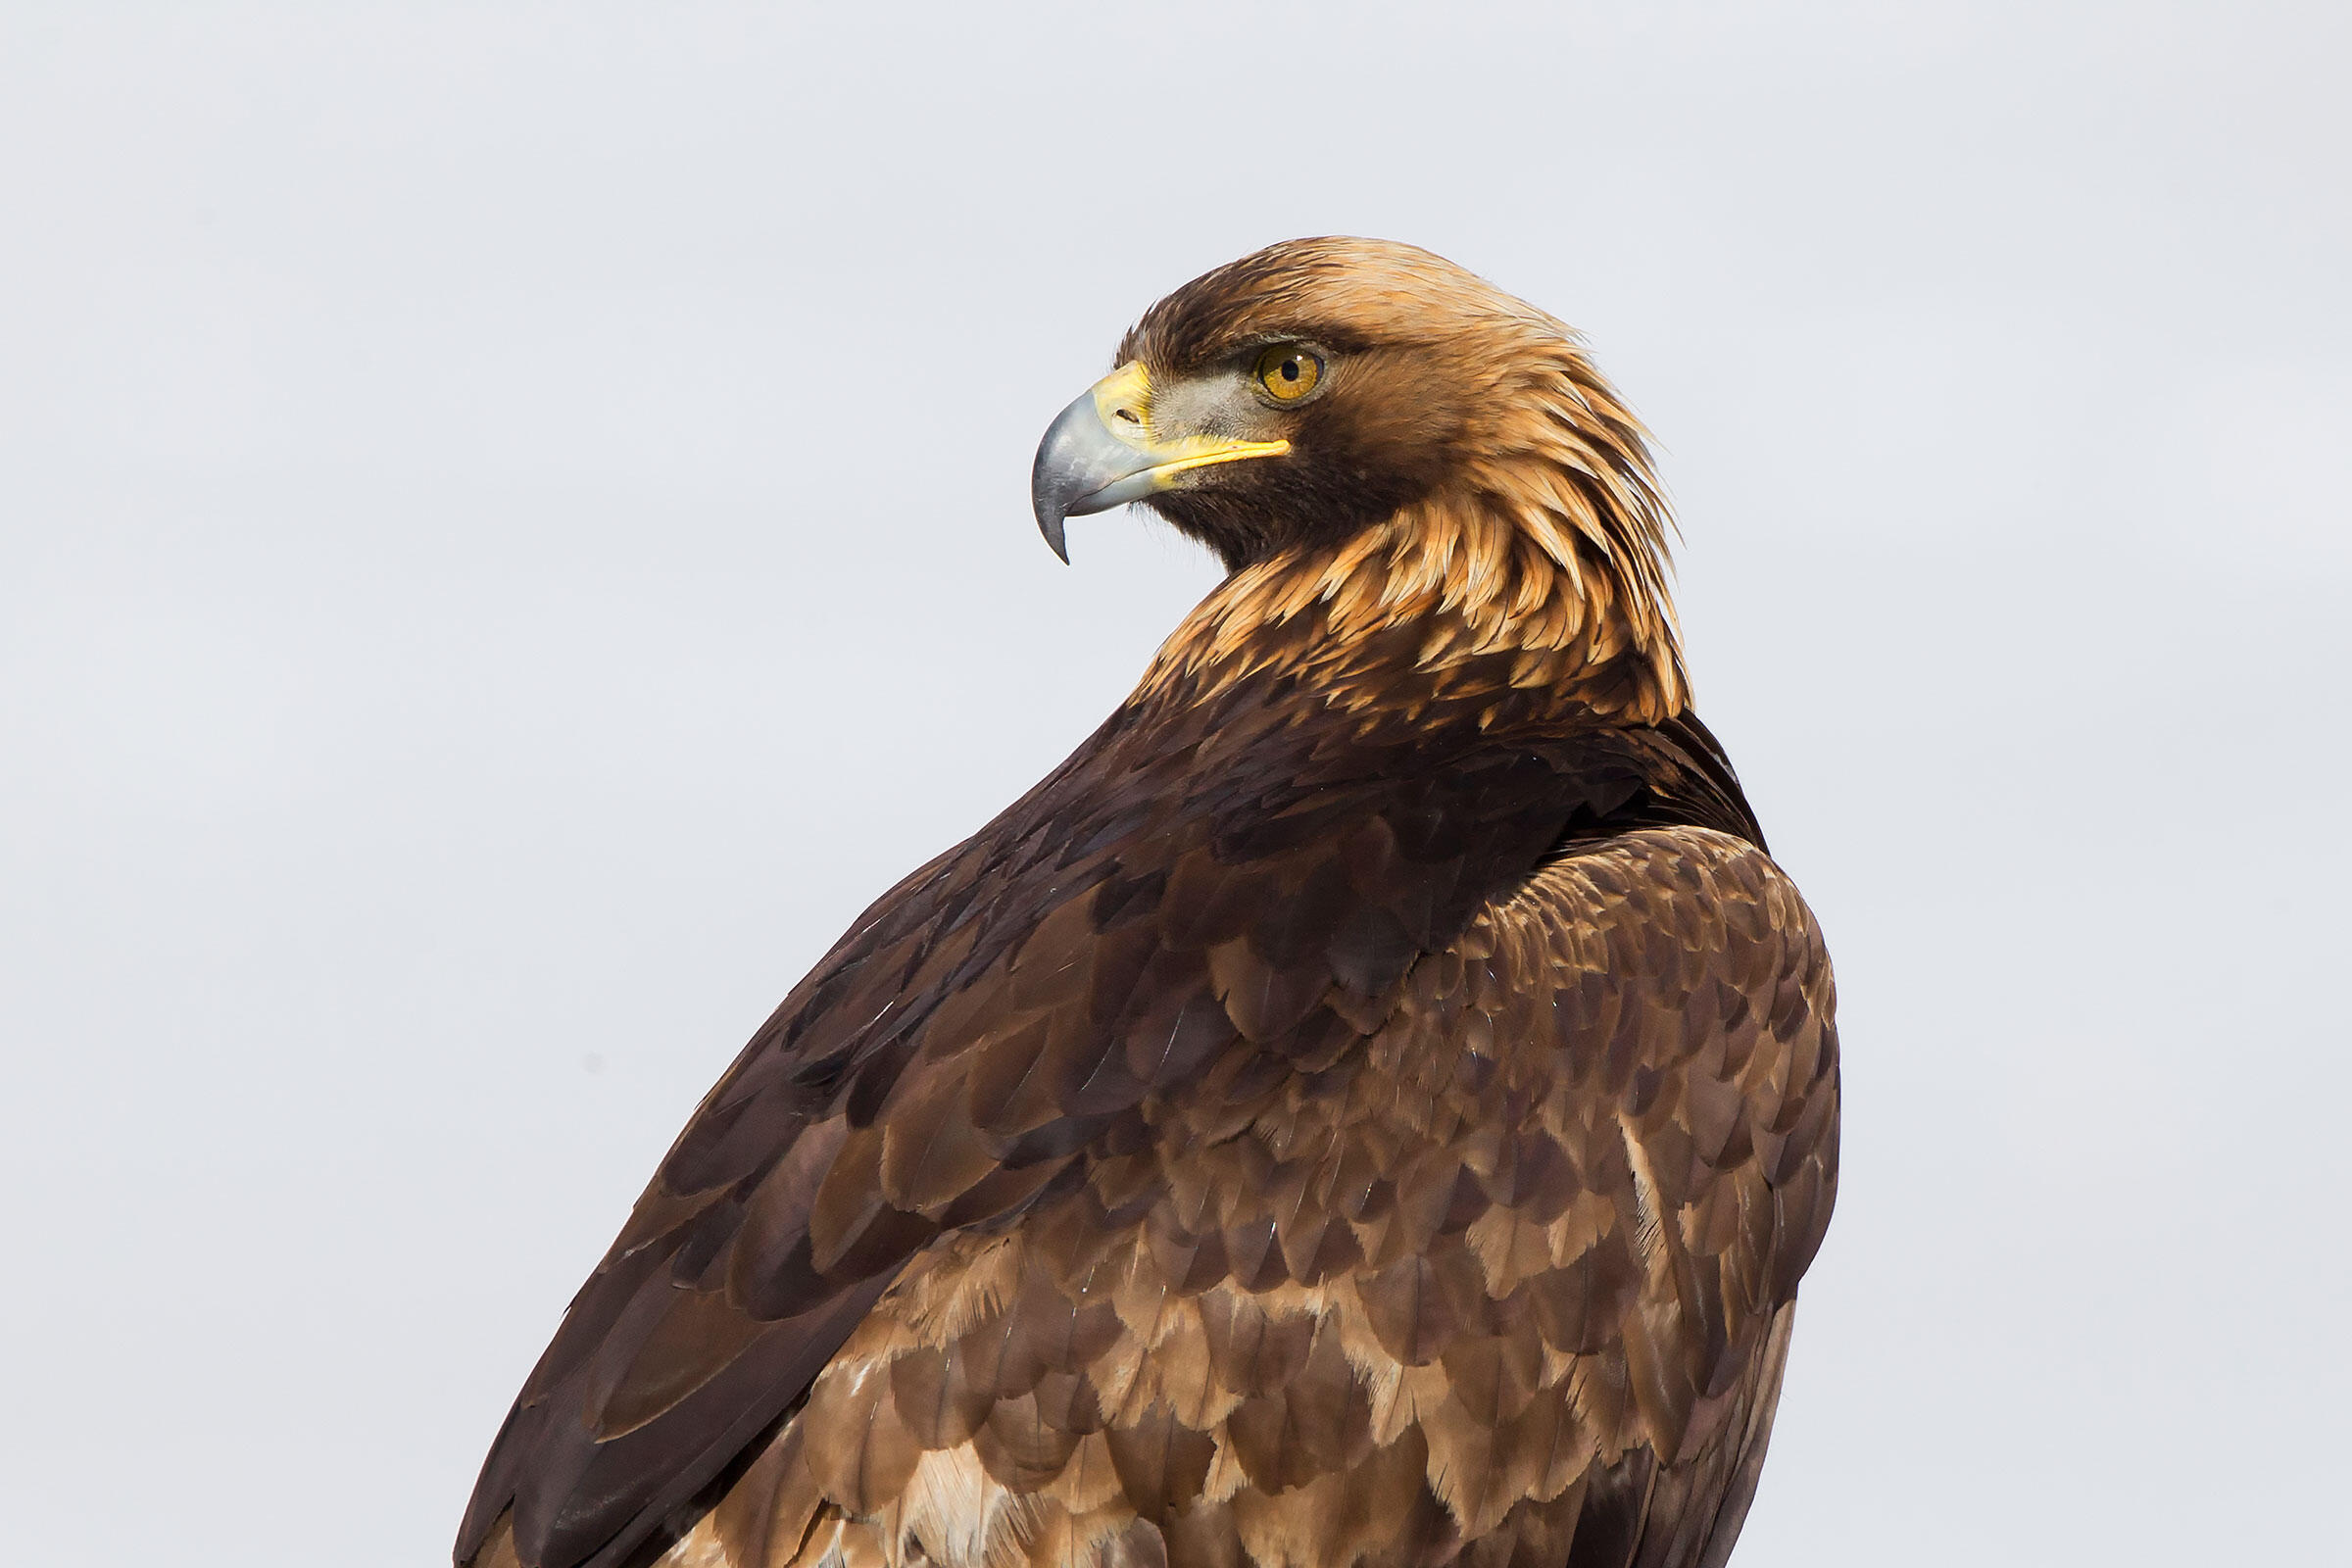 Golden Eagle. Robbie George/National Geographic Creative